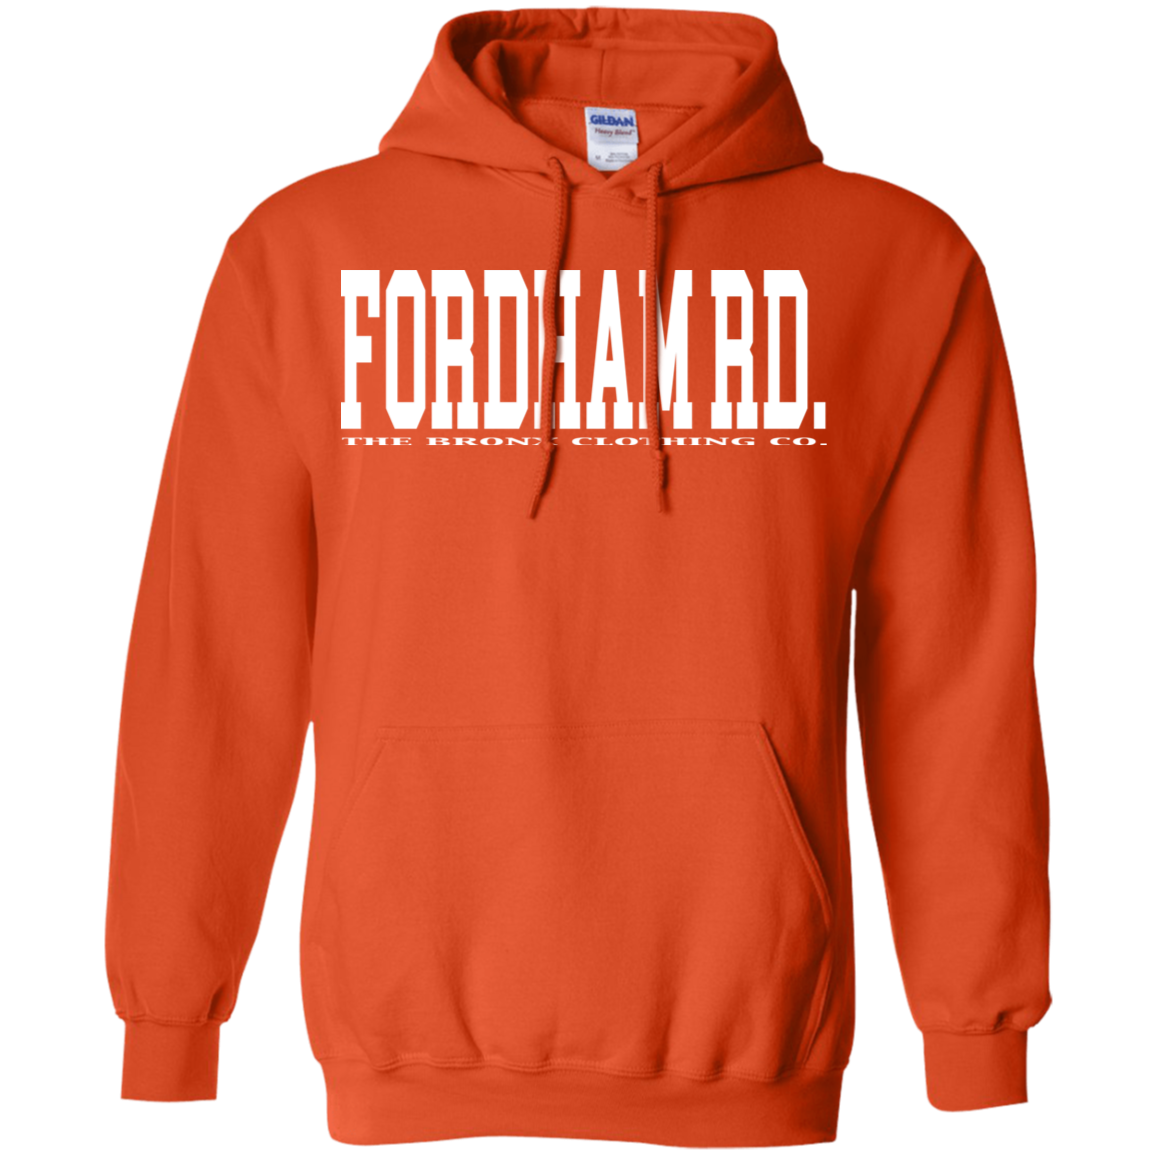 Fordham Rd. - Neighborhood Series Hoodie